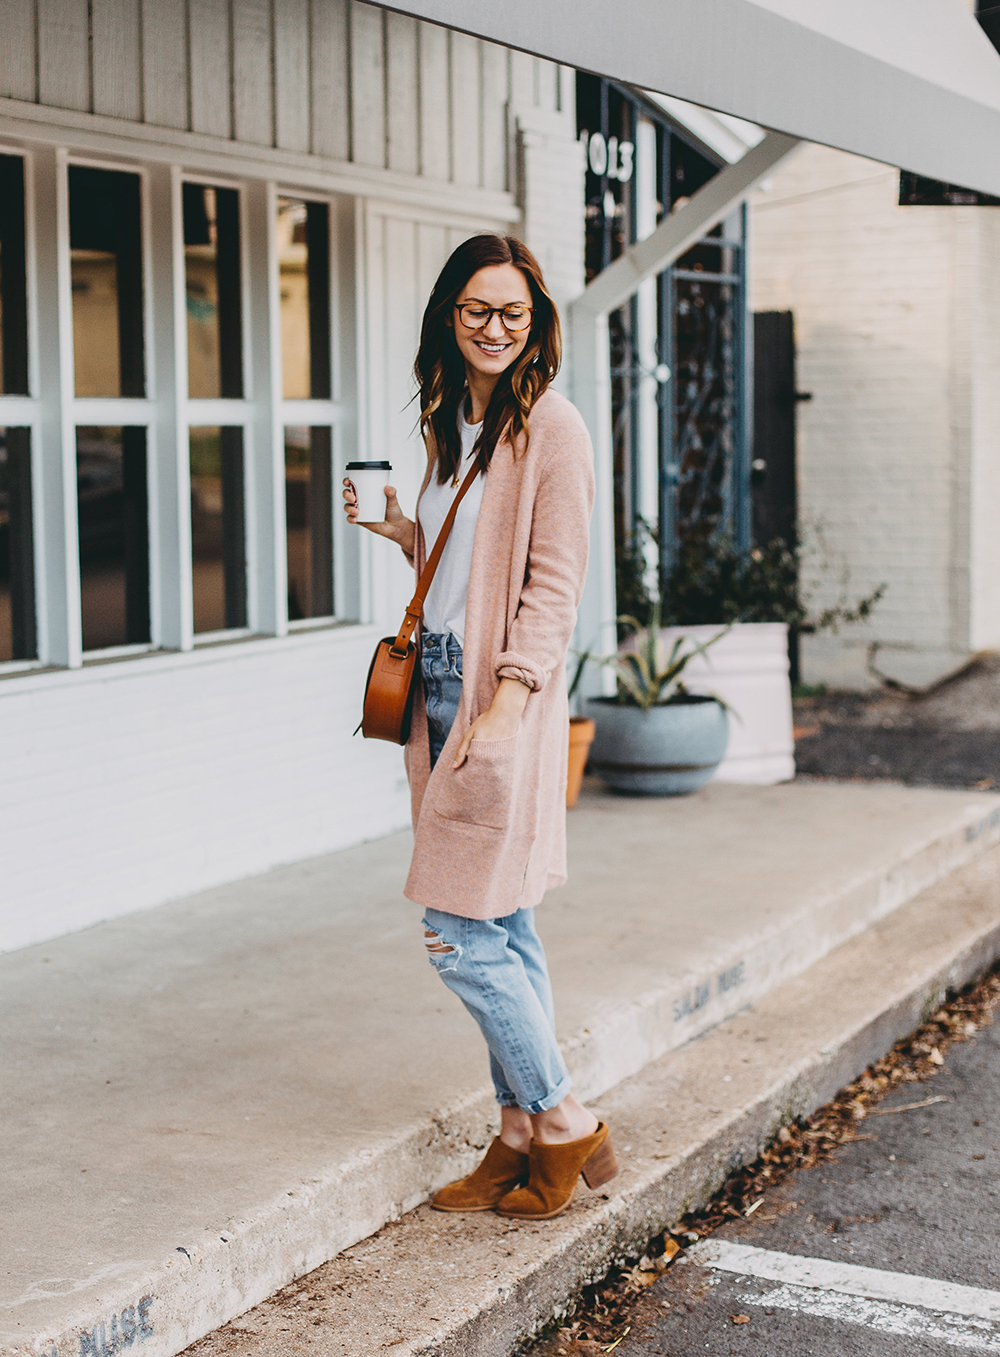 livvyland-blog-olivia-watson-austin-texas-fashion-blogger-spring-transition-wardrobe-pieces-madewell-blush-cardigan-tan-mules-10